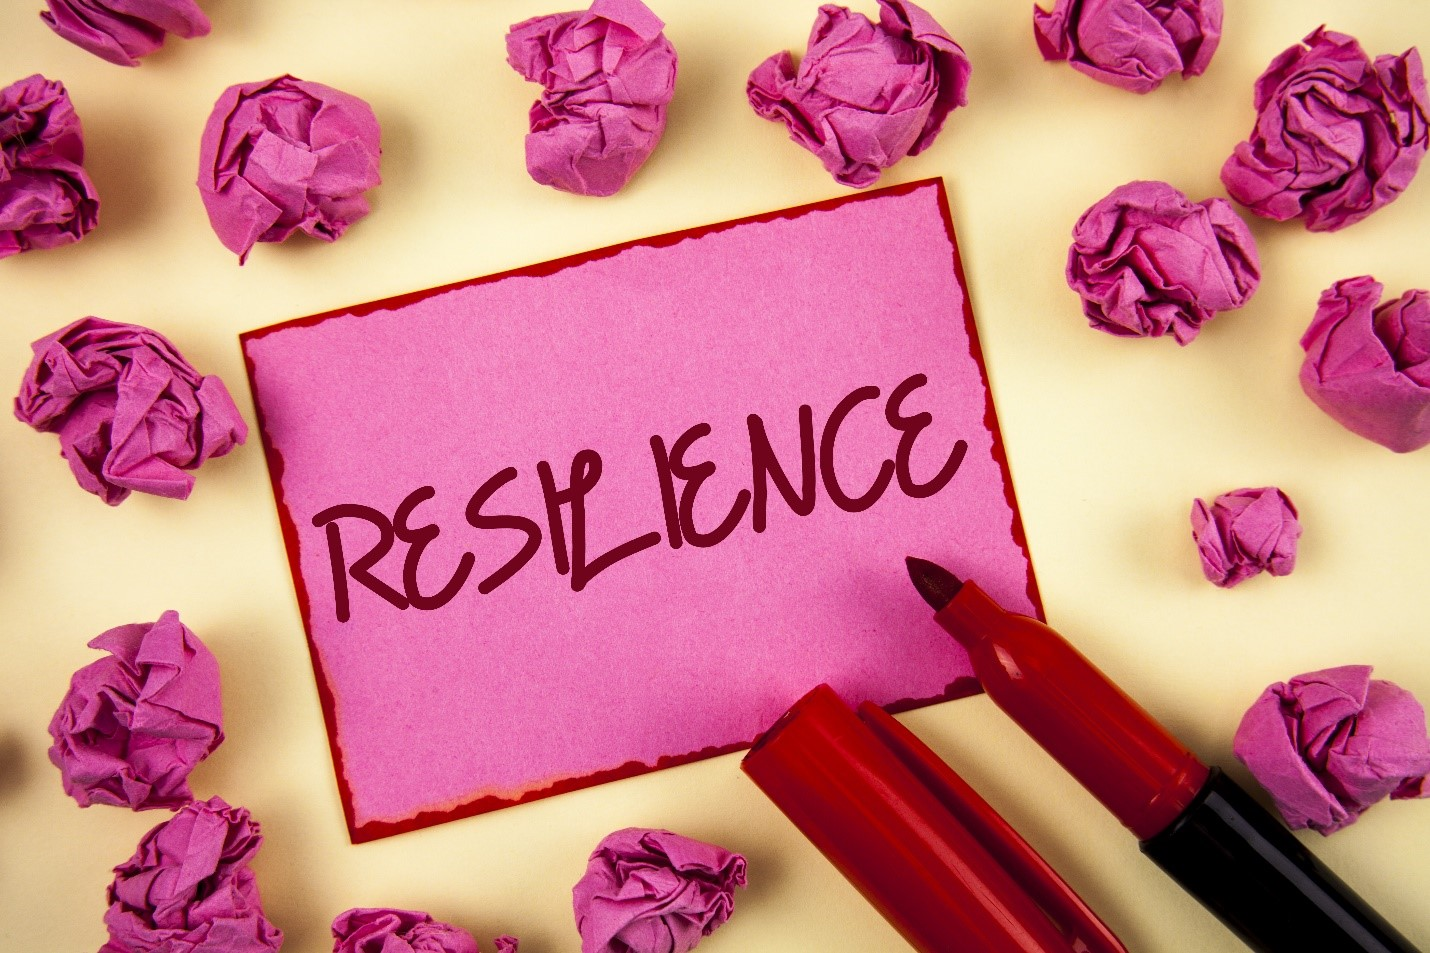 The word resilience on a pink background